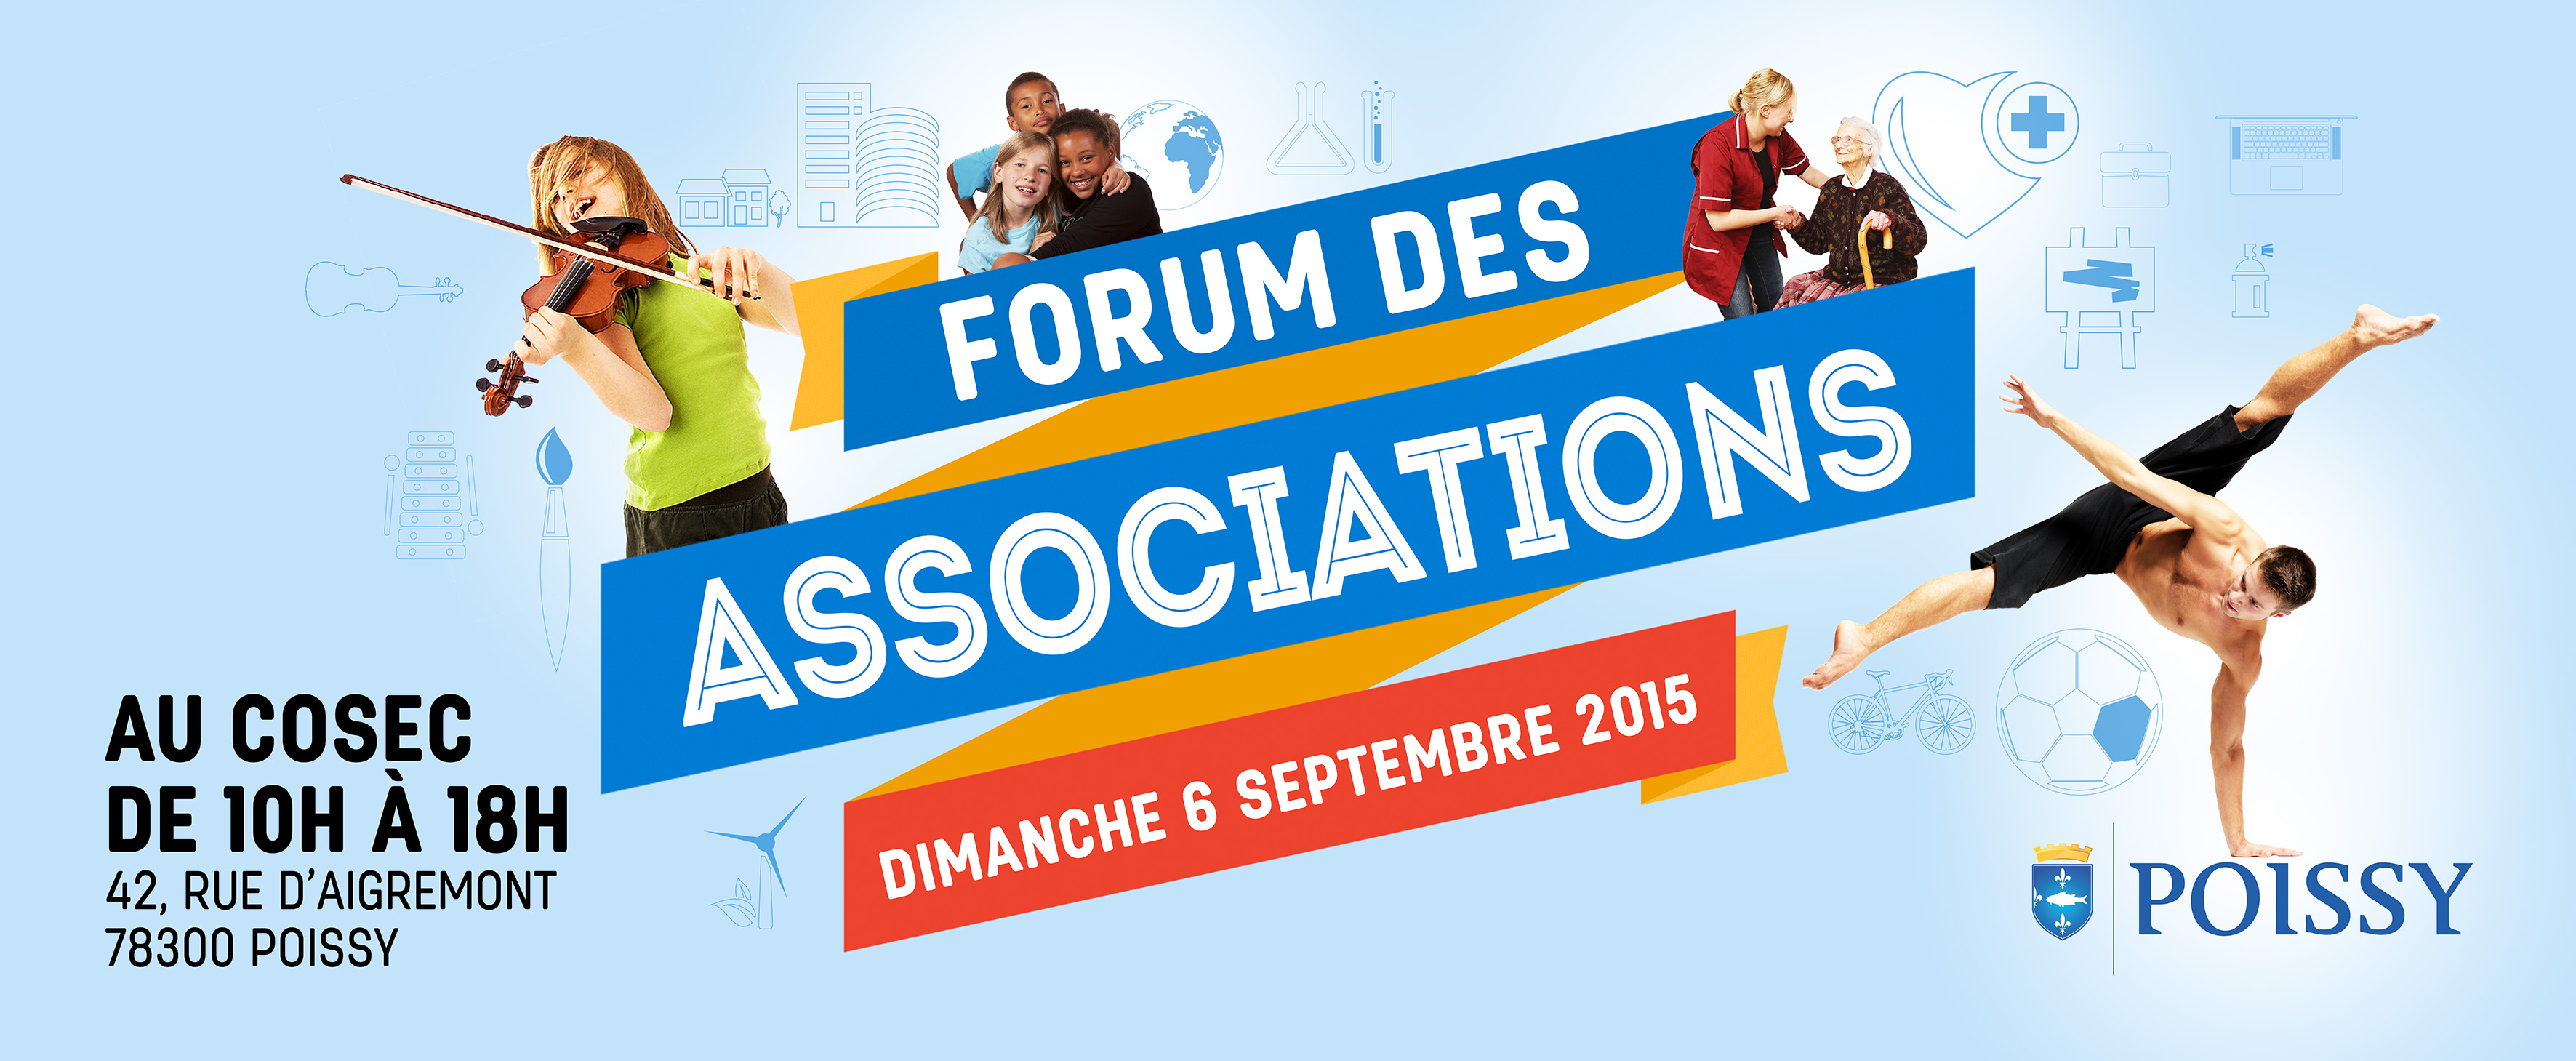 6 septembre 2015 : Forum des associations